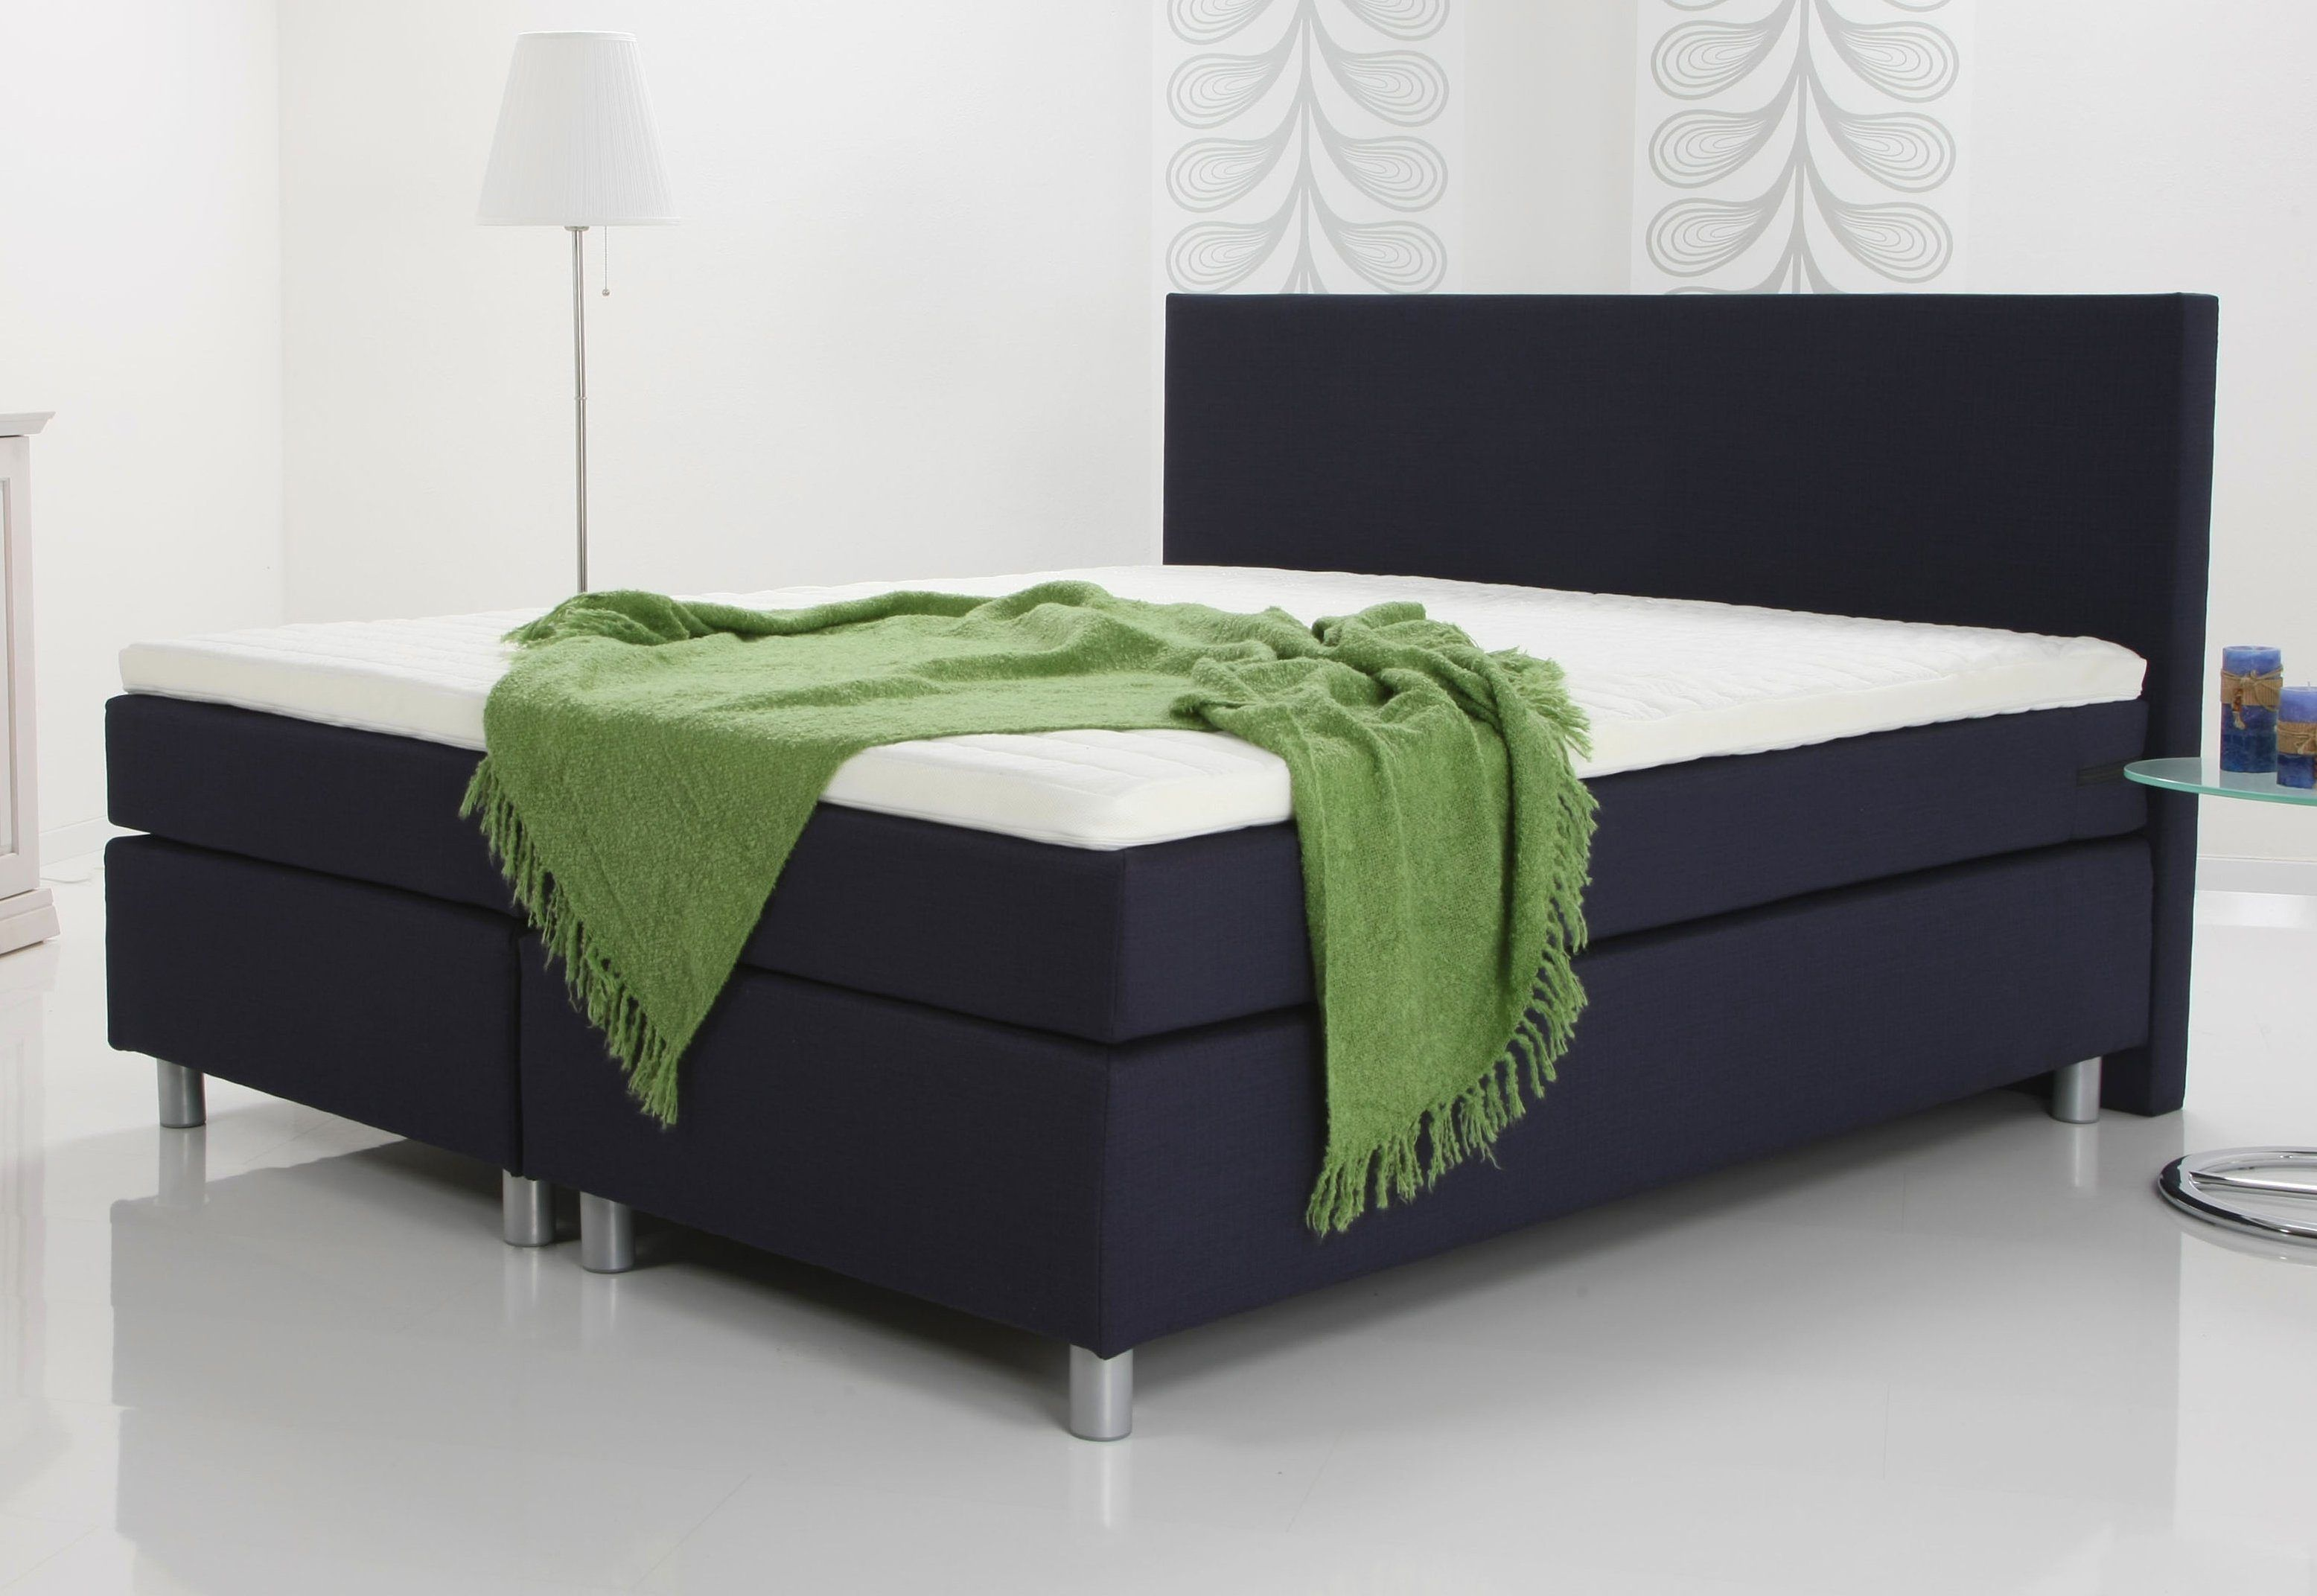 Boxspringbett, Liegefl. 90/200cm, Härtegrad 2, Breckle Jetzt bestellen unter: https://moebel.ladendirekt.de/schlafzimmer/betten/boxspringbetten/?uid=fec9c8dc-7620-52f0-a274-58d526fa1b42&utm_source=pinterest&utm_medium=pin&utm_campaign=boards #betten #boxspringbetten #schlafzimmer #boxspringbett